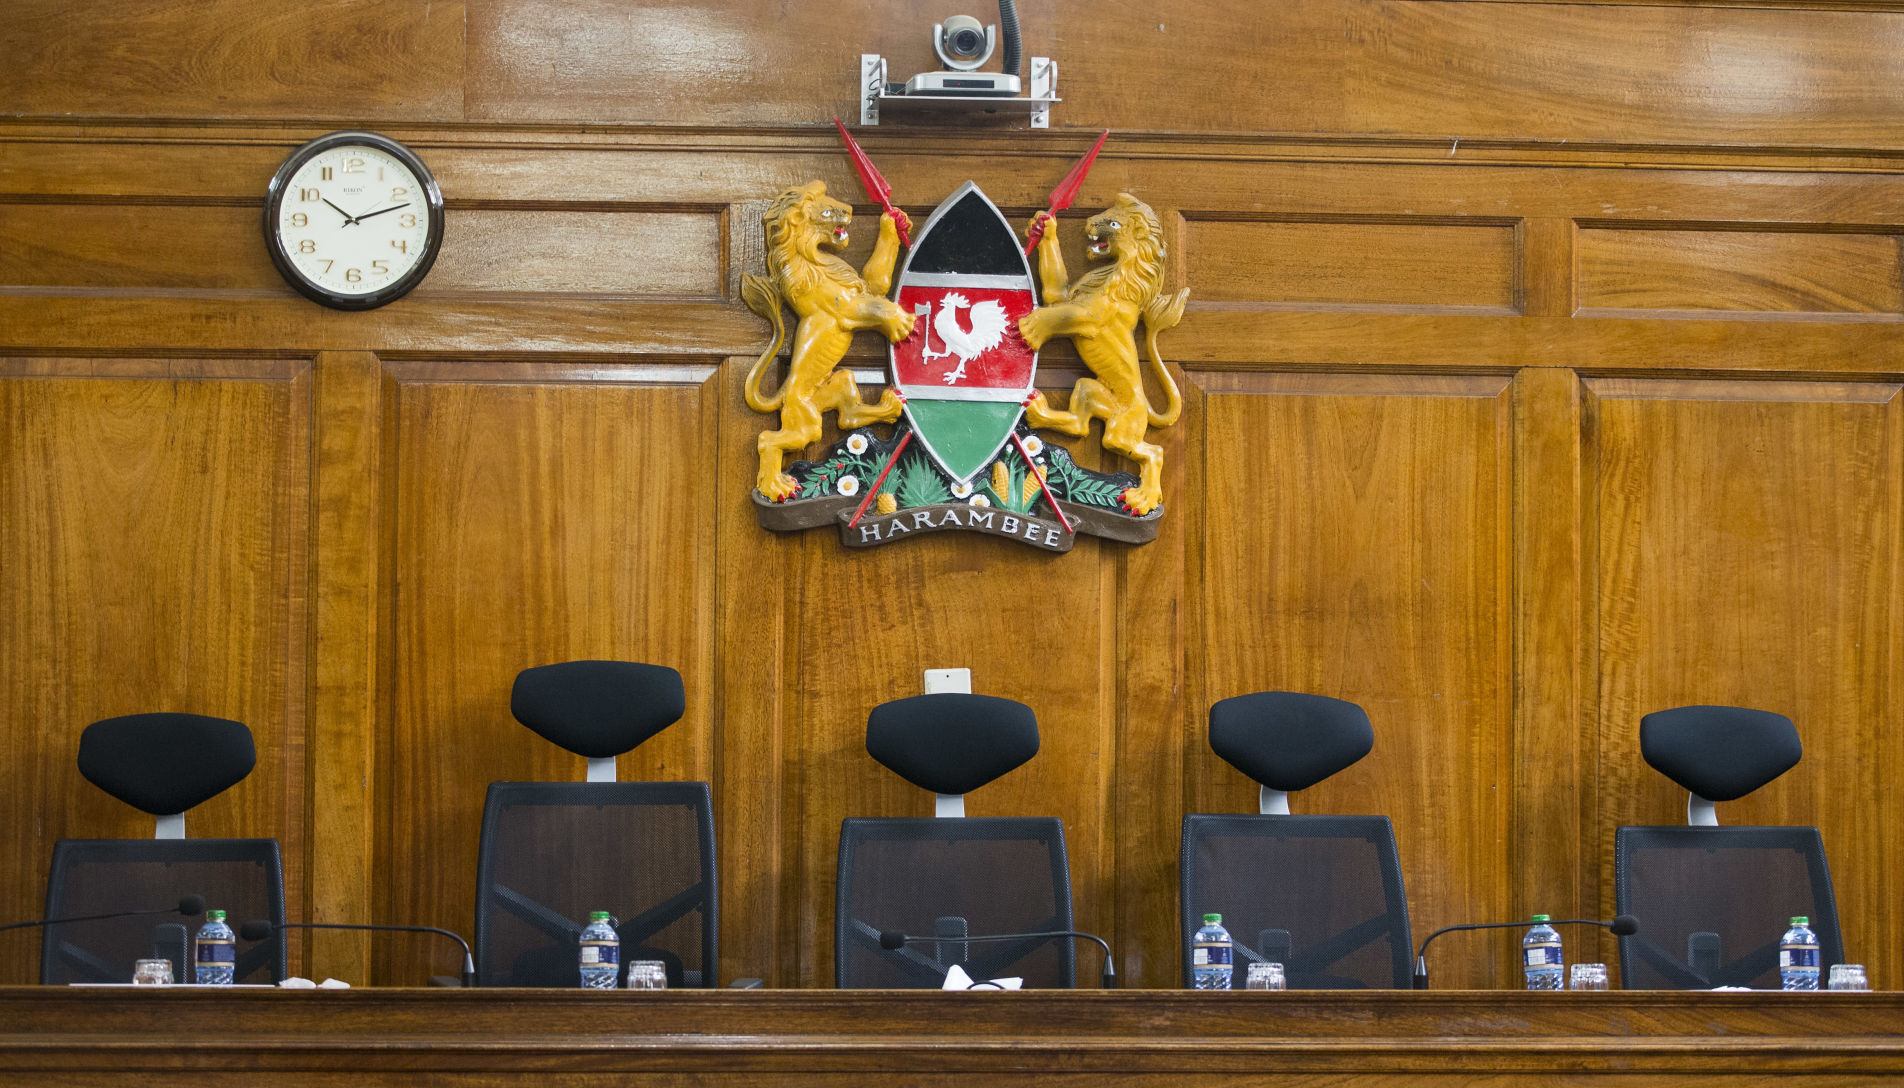 The Supreme Court of Kenya. In Kenyan courts, corruption cases involving politicians seem to go rest in peace. www.businesstoday.co.ke